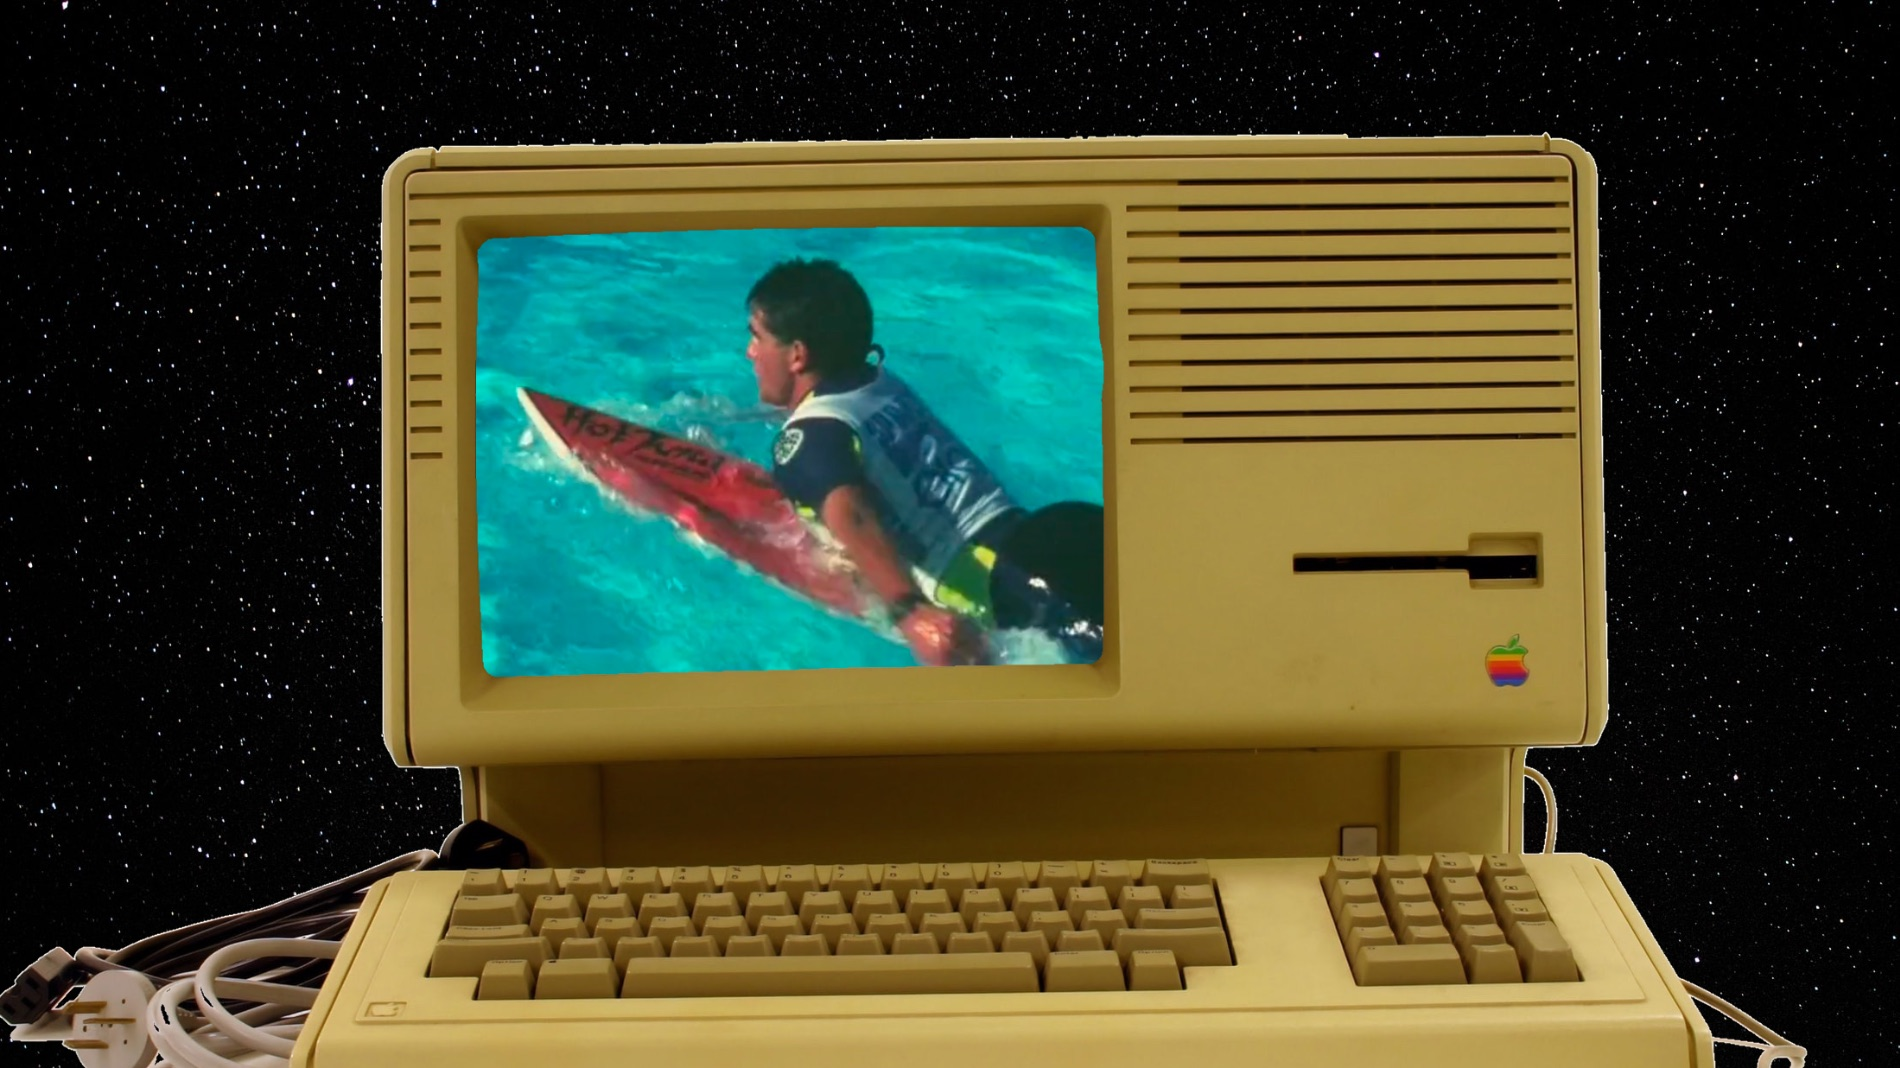 vintage computer and wave pool